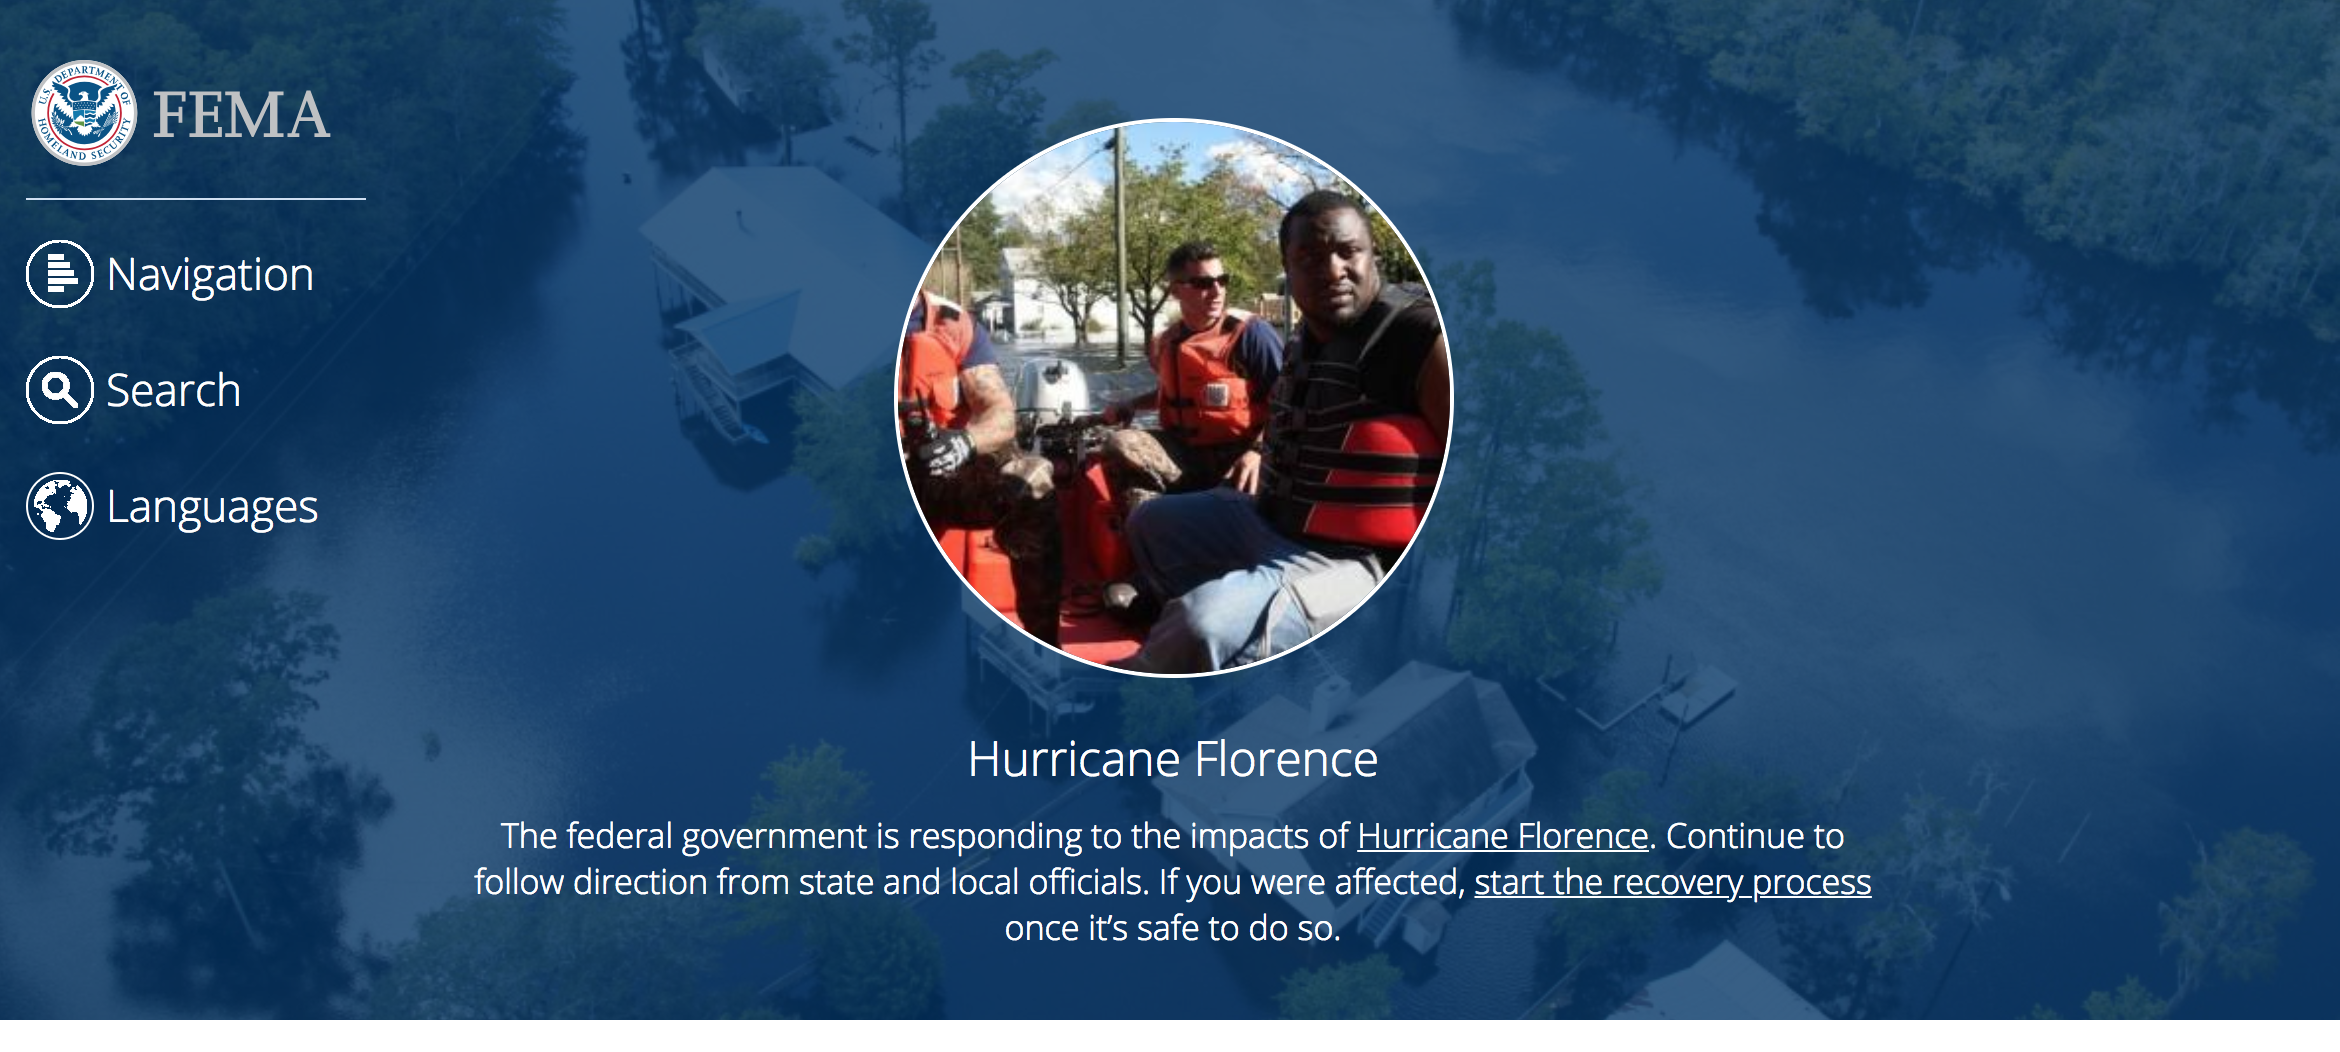 screenshot of the FEMA homepage showing information on Hurricane Florence